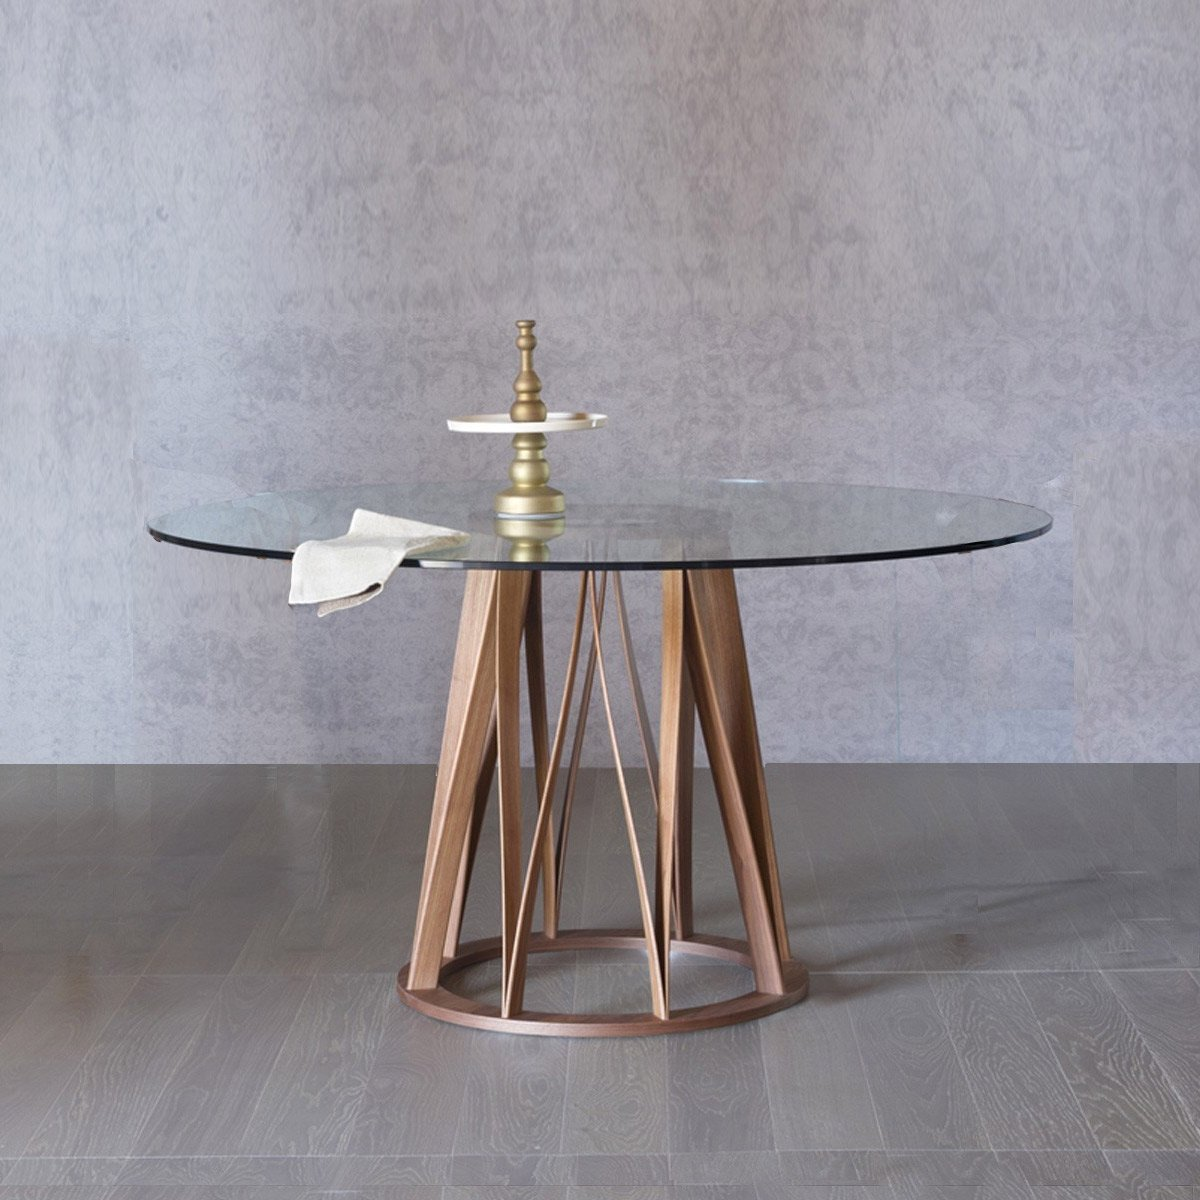 Round Glass Dining Table Acco Round Wood And Glass Dining Table Klarity Glass